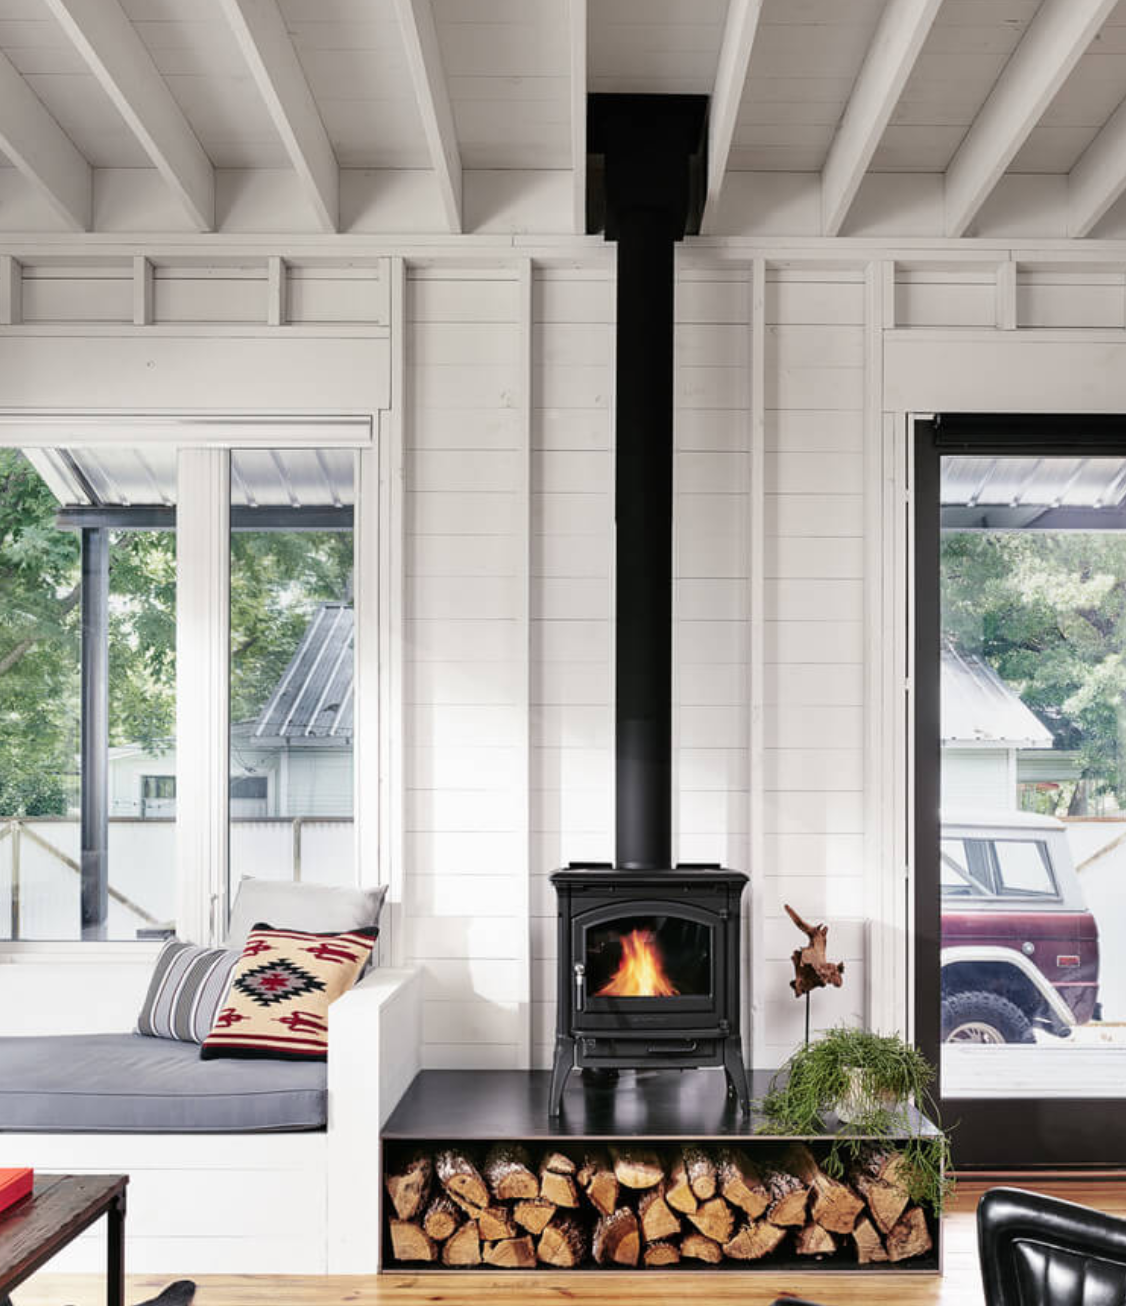 Get The Scandinavian Farmhouse Look See More At Americanfarmhousestyle Com Wood Burning Stove Corner Wood Burning Stoves Living Room Wood Stove Decor